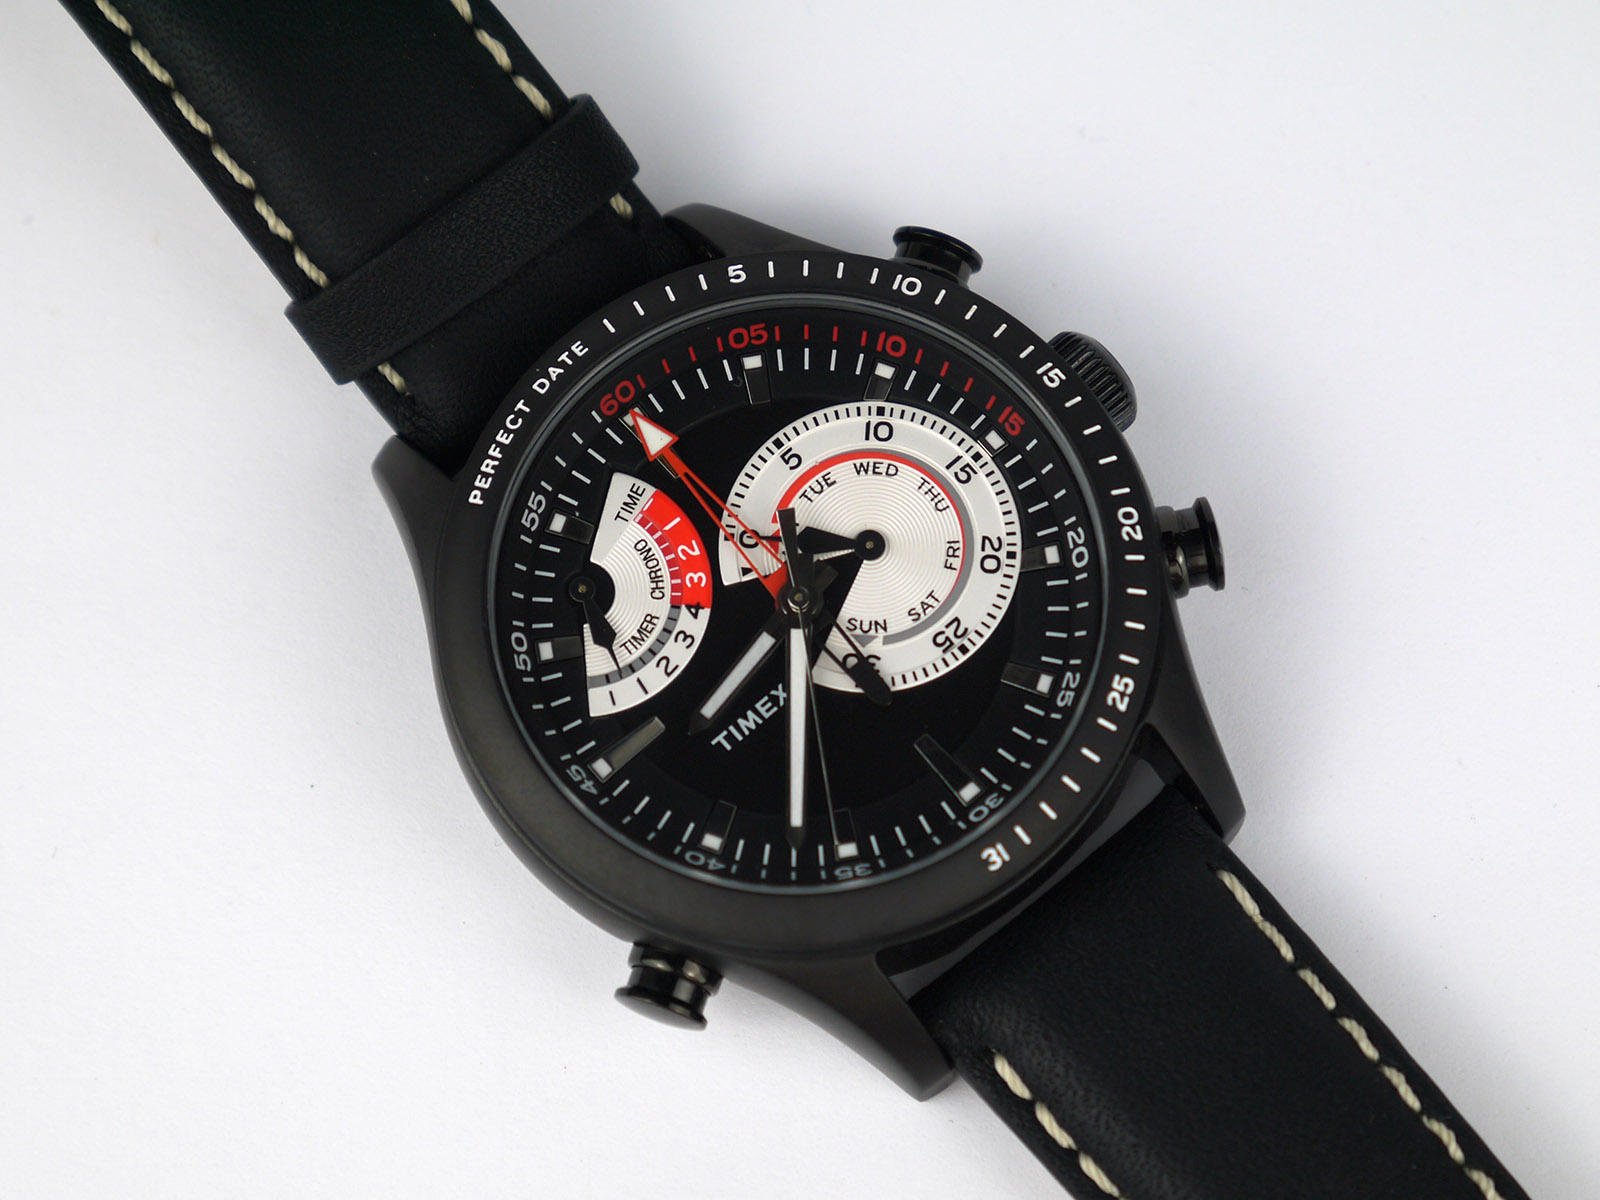 Timex Tw2p72600 Intelligent Quartz Watch High Quality Gallery Expedition E6339 Men Black Leather Brown